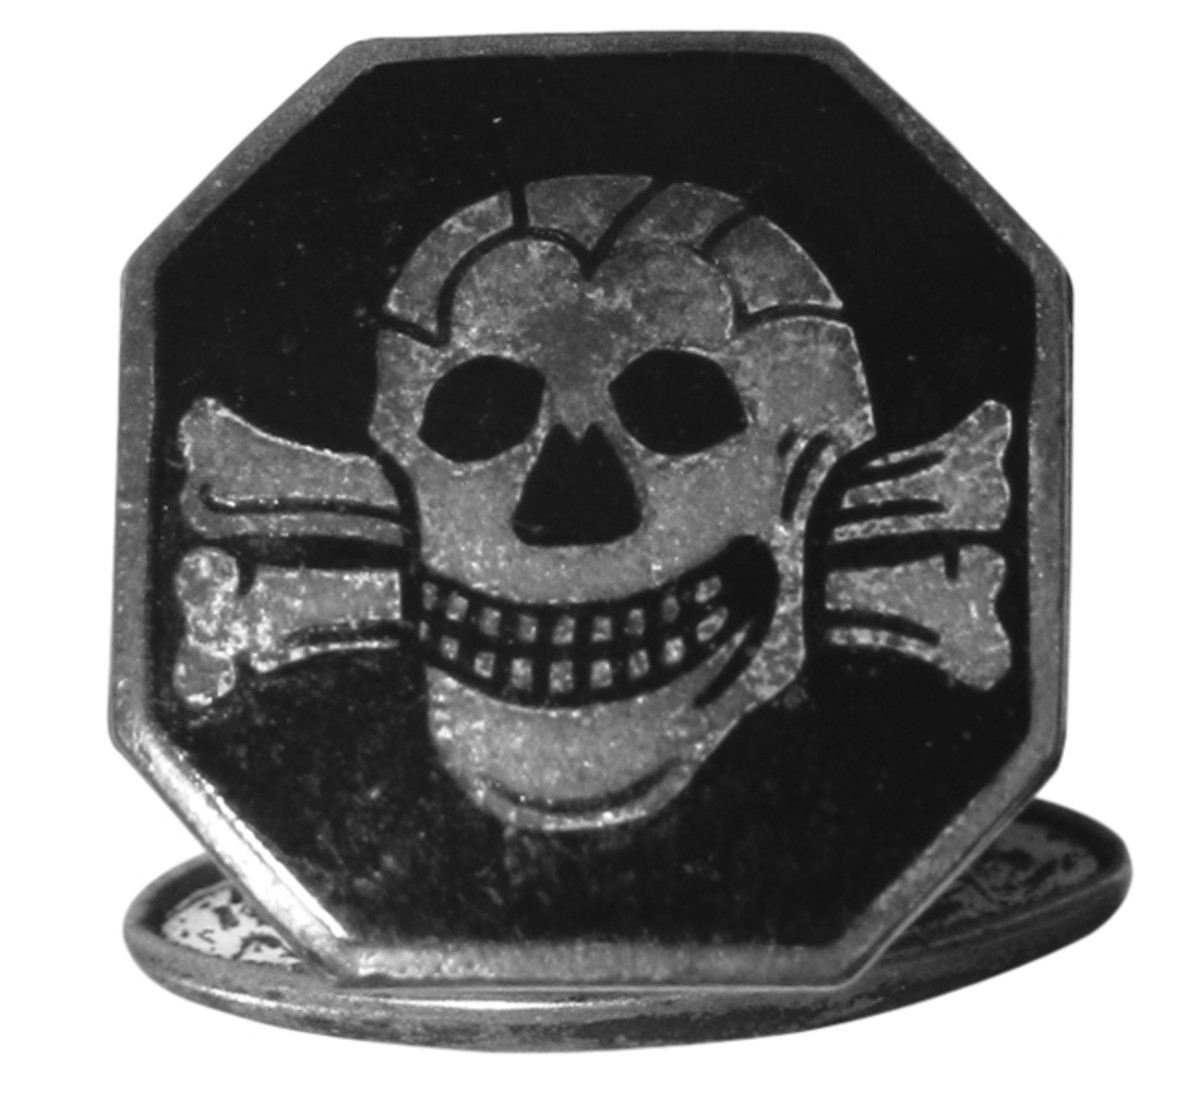 Officers could purchase privately manufactured death's head items such as this SS cuff link.